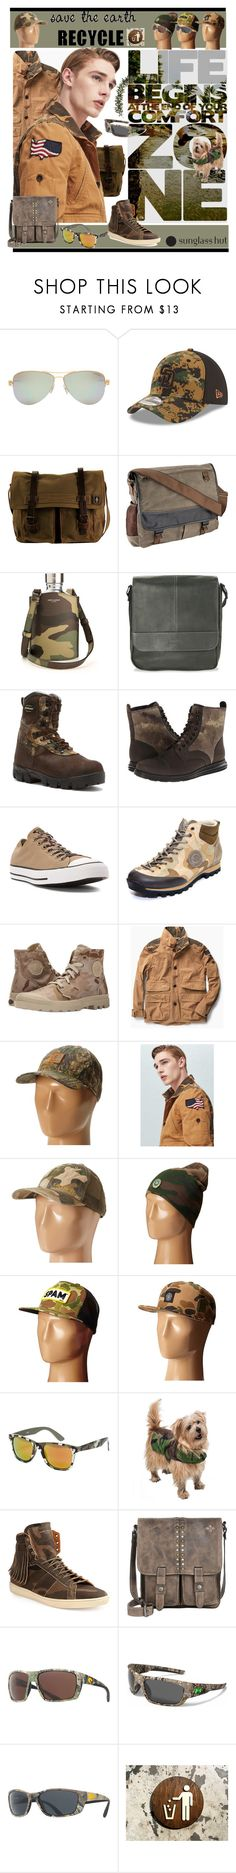 """""""Go Camo! Recycle!"""" by yours-styling-best-friend ❤ liked on Polyvore featuring Tiffany & Co., New Era, DamnDog, R & R Collections, Yves Saint Laurent, Kenneth Cole Reaction, LaCrosse, Cole Haan, Converse and Napapijri"""